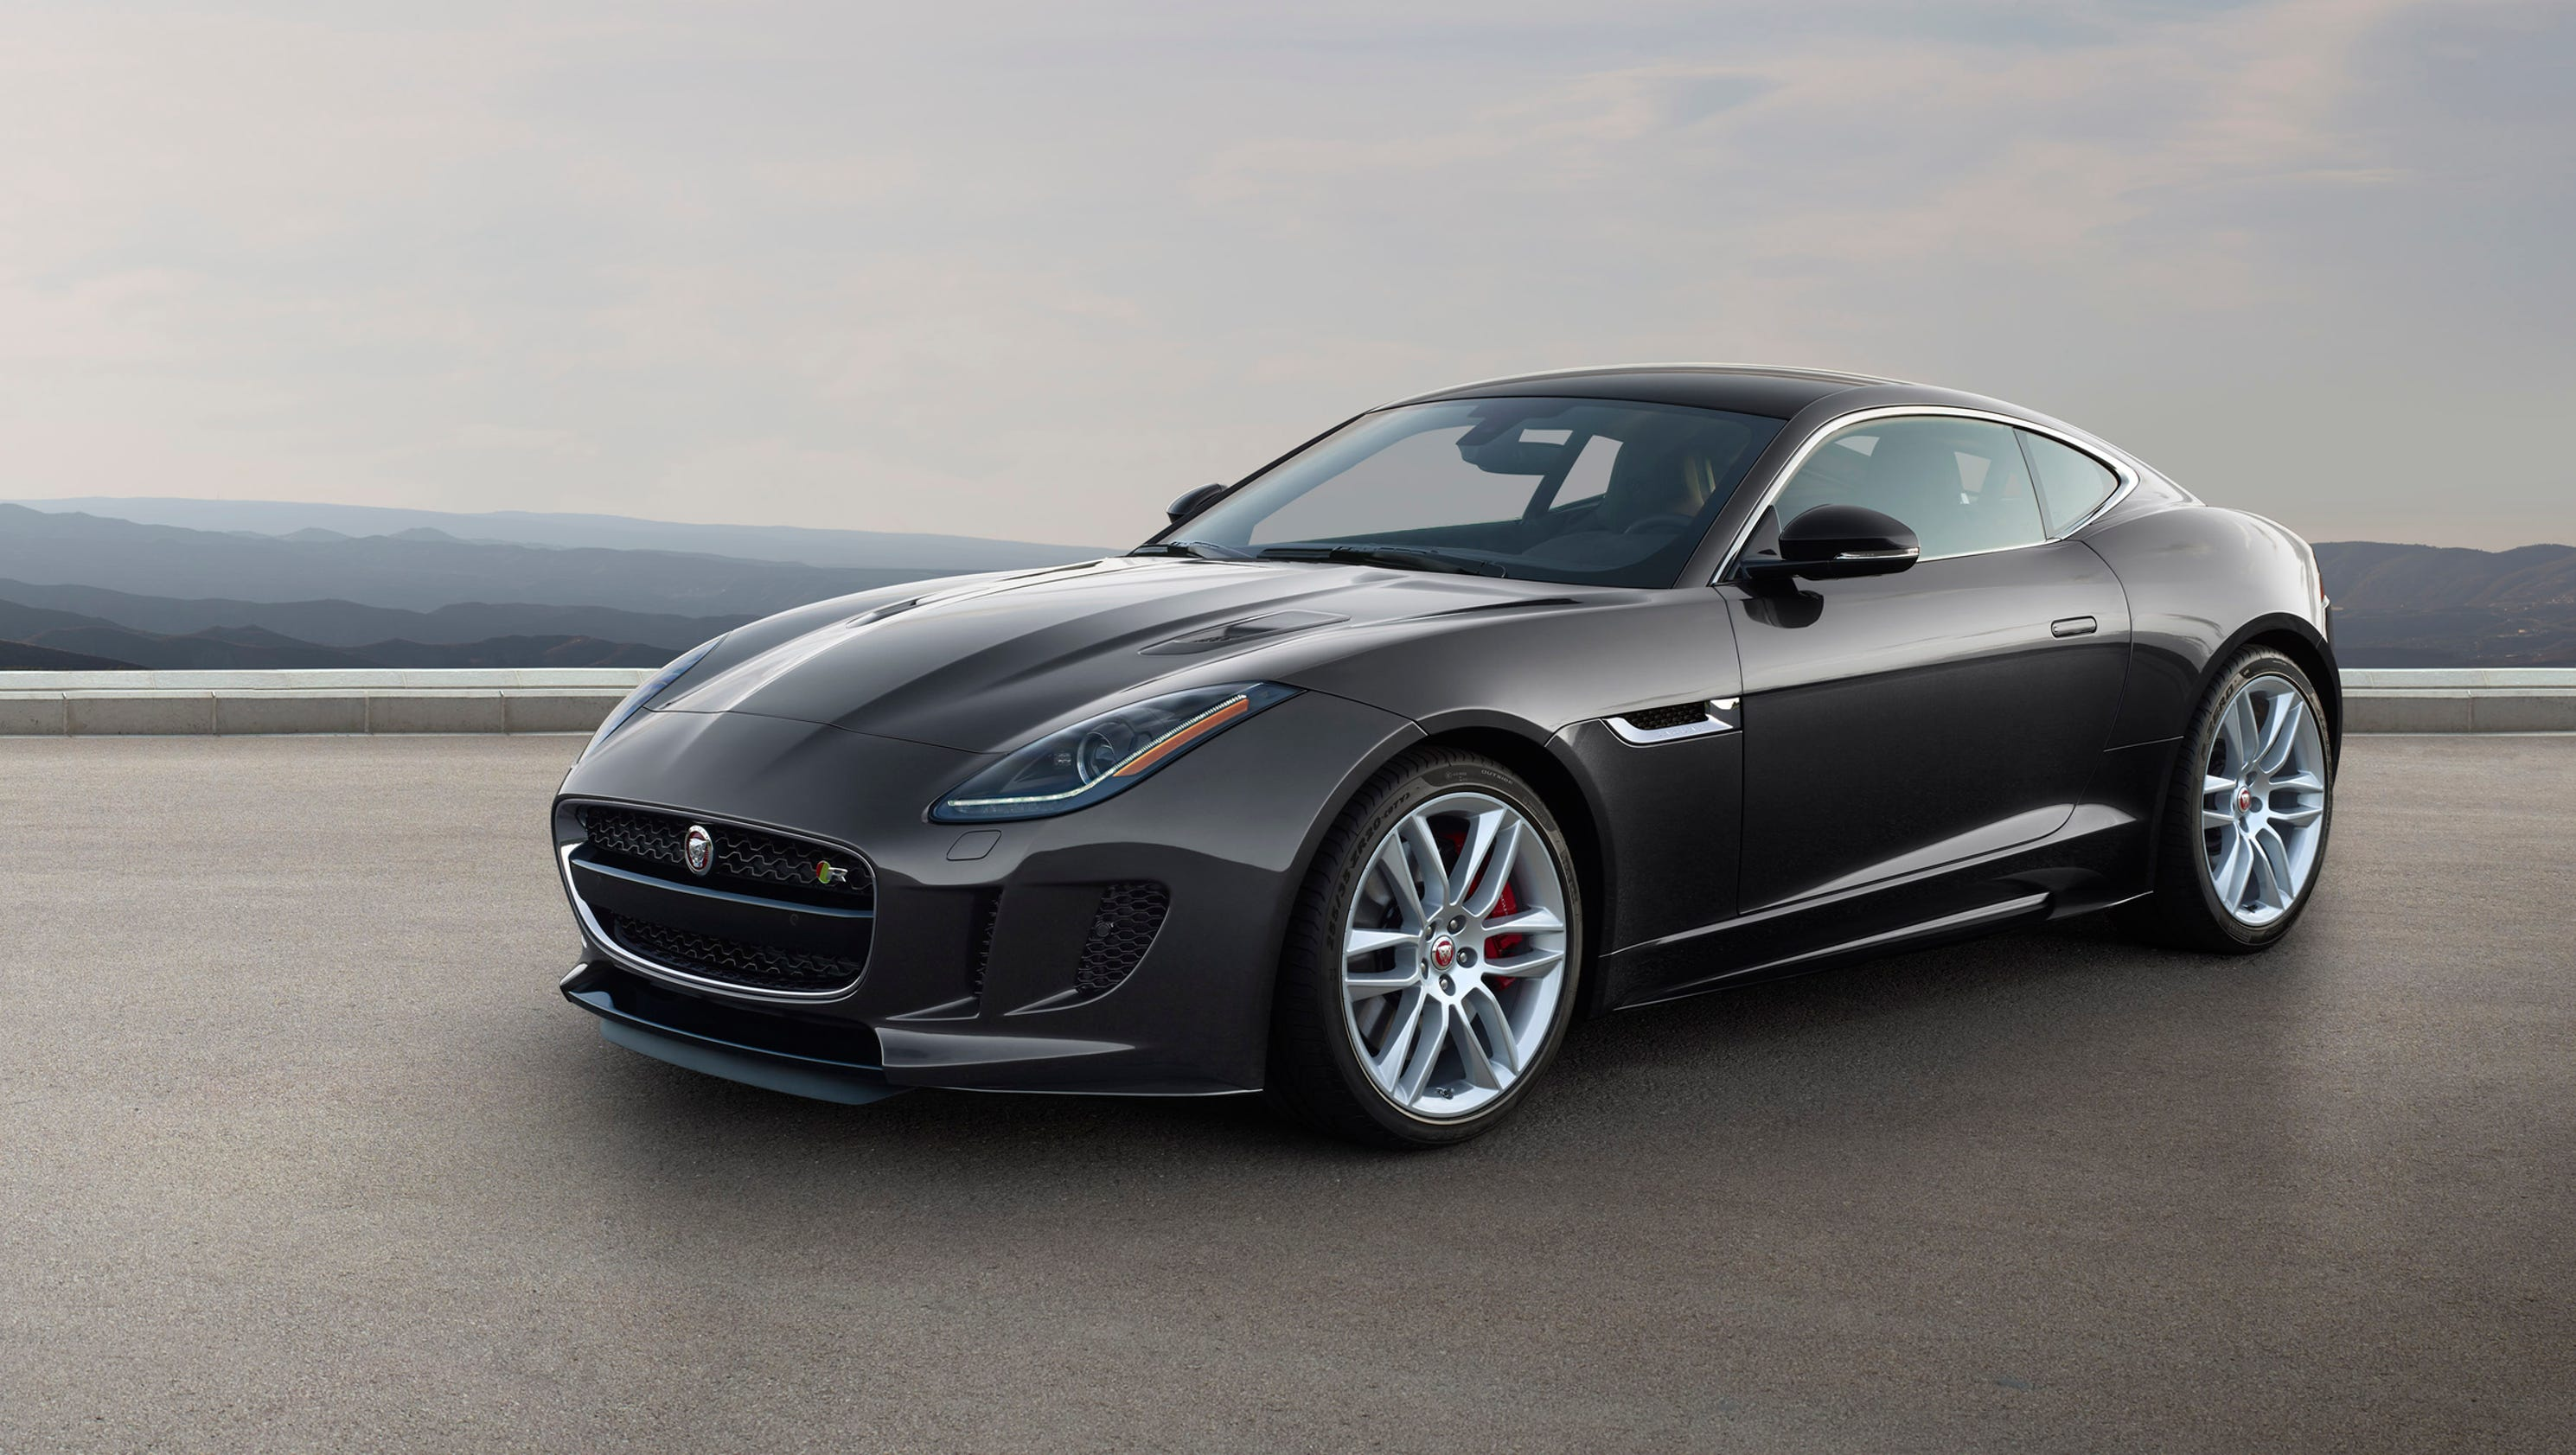 photos 2016 jaguar f type coupe. Black Bedroom Furniture Sets. Home Design Ideas